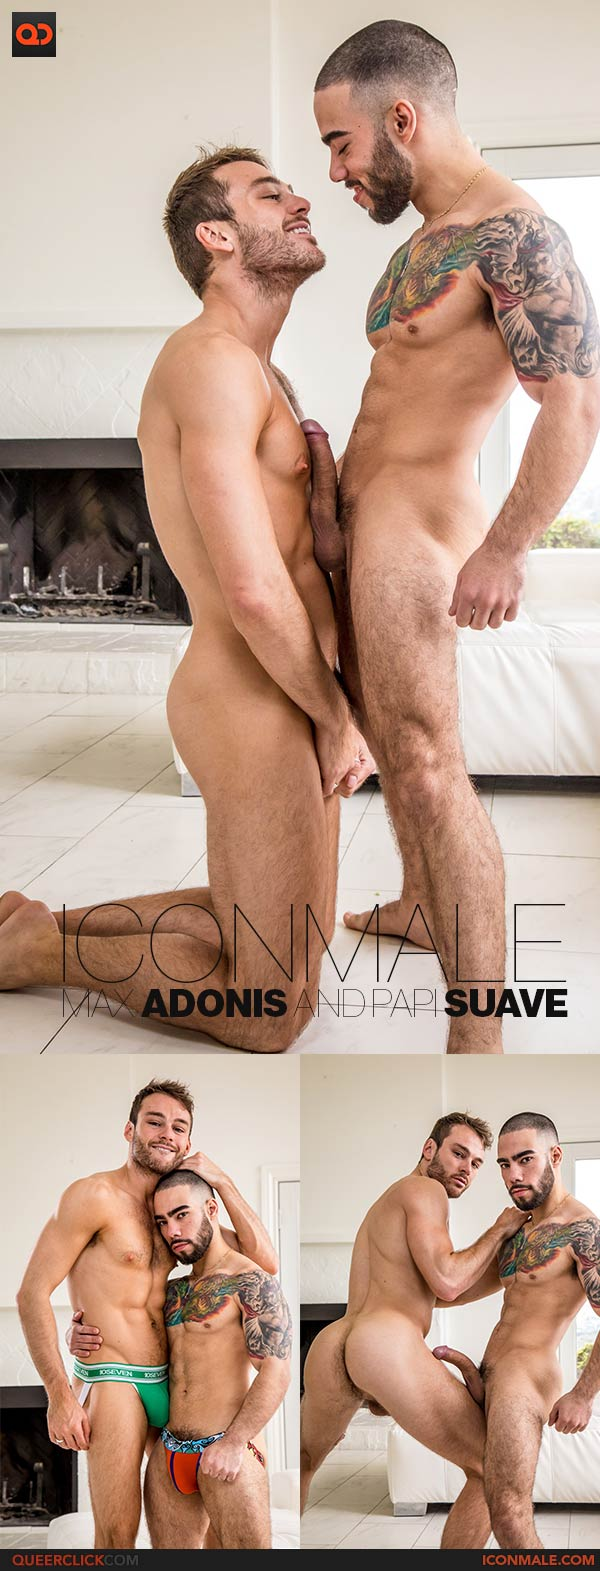 Icon Male: Max Adonis and Papi Suave